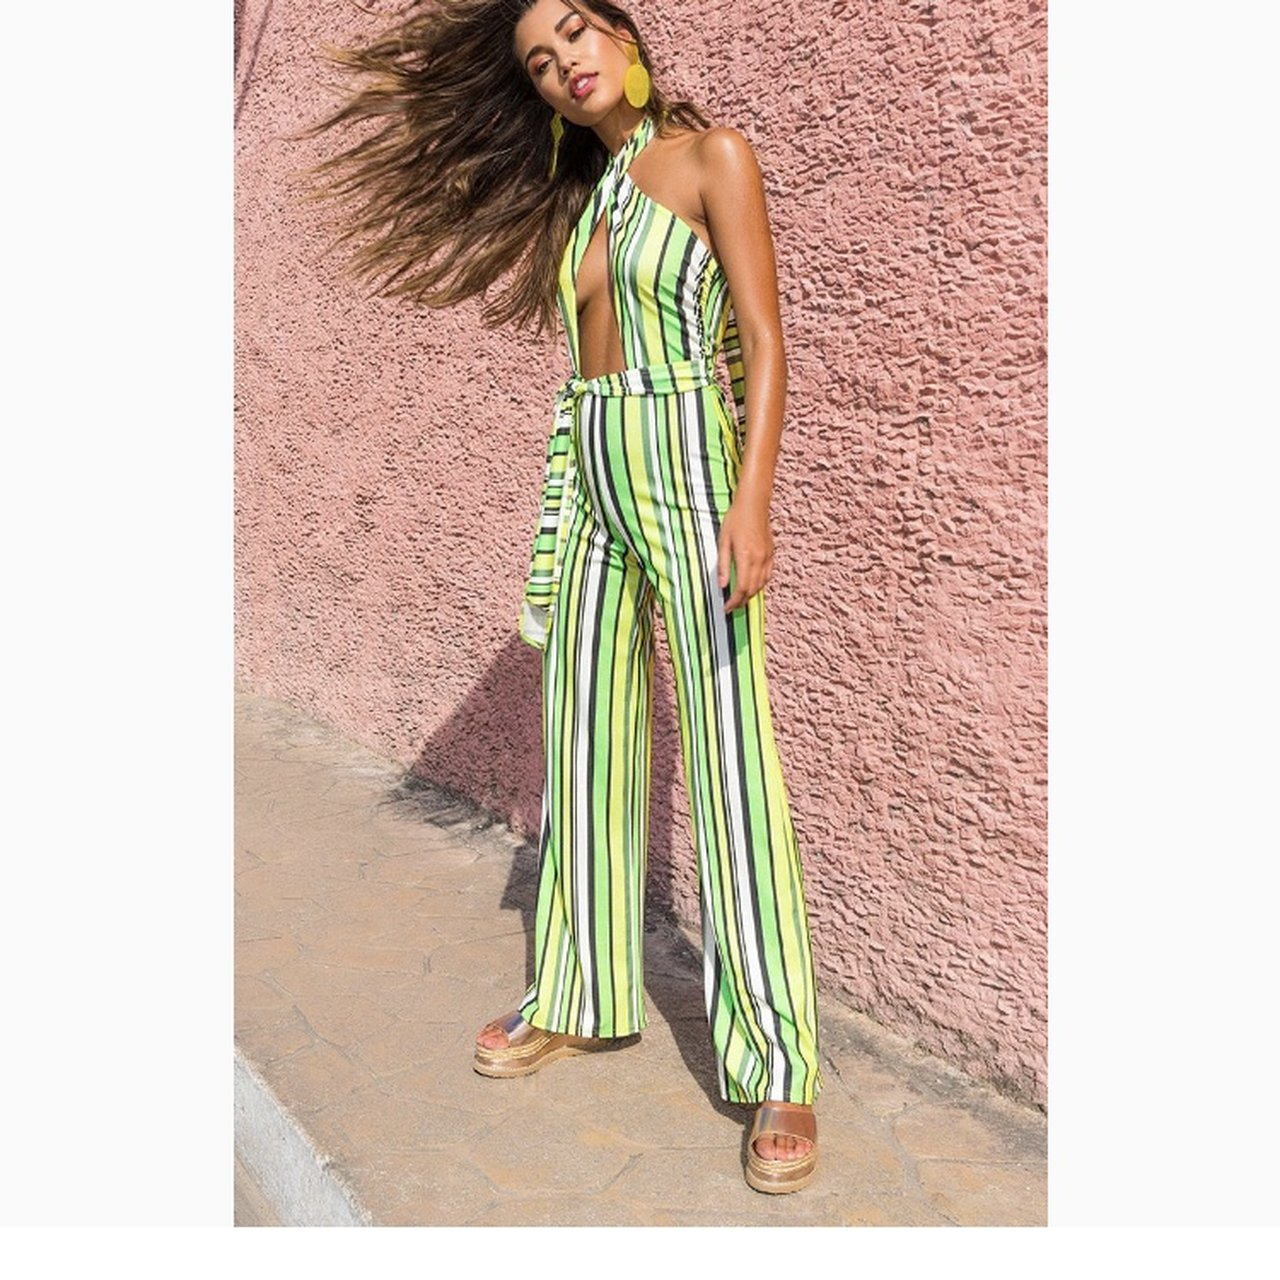 990c9add31 Pretty little thing stripe jumpsuit